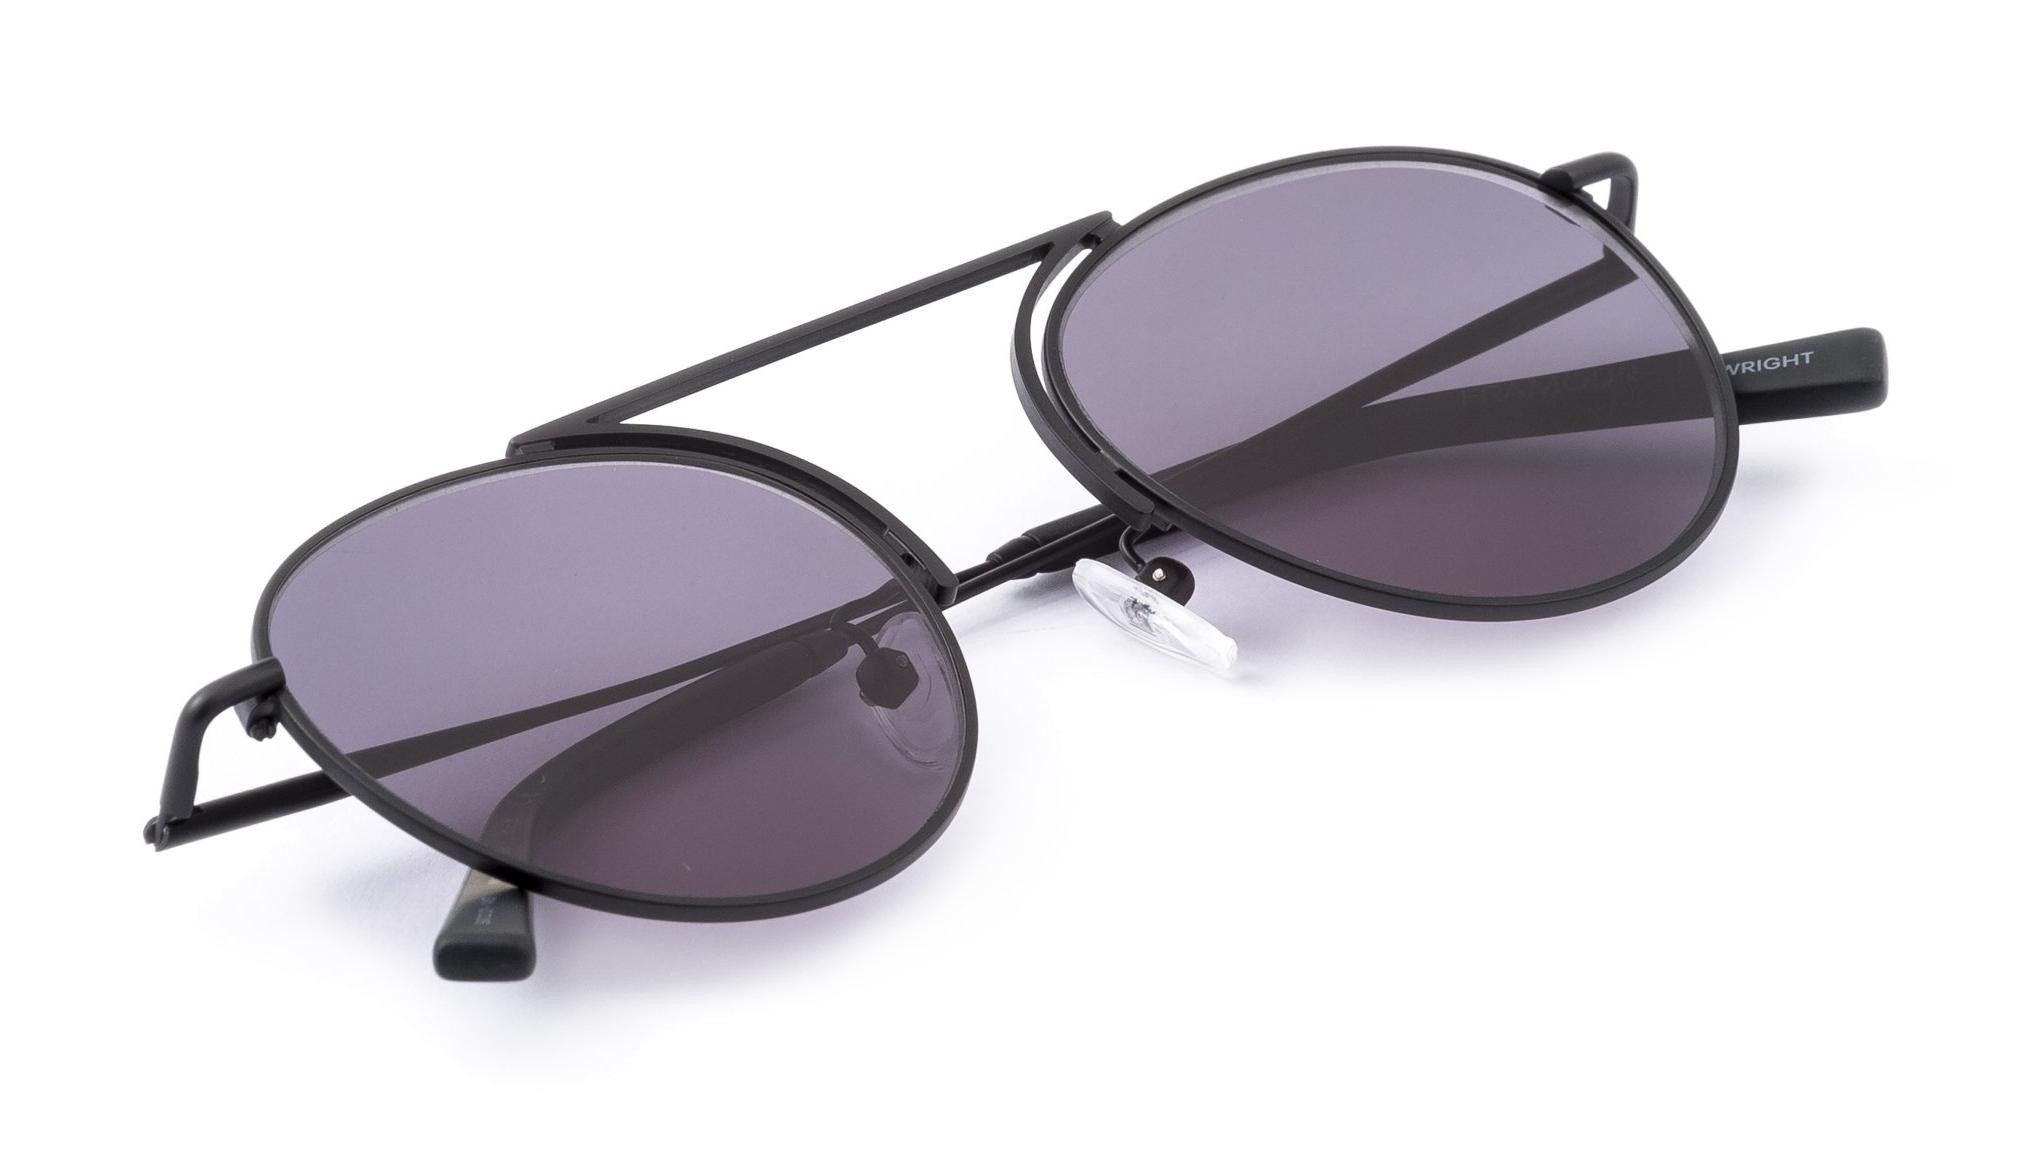 Occhiali da sole Framour - Wright Matte Black